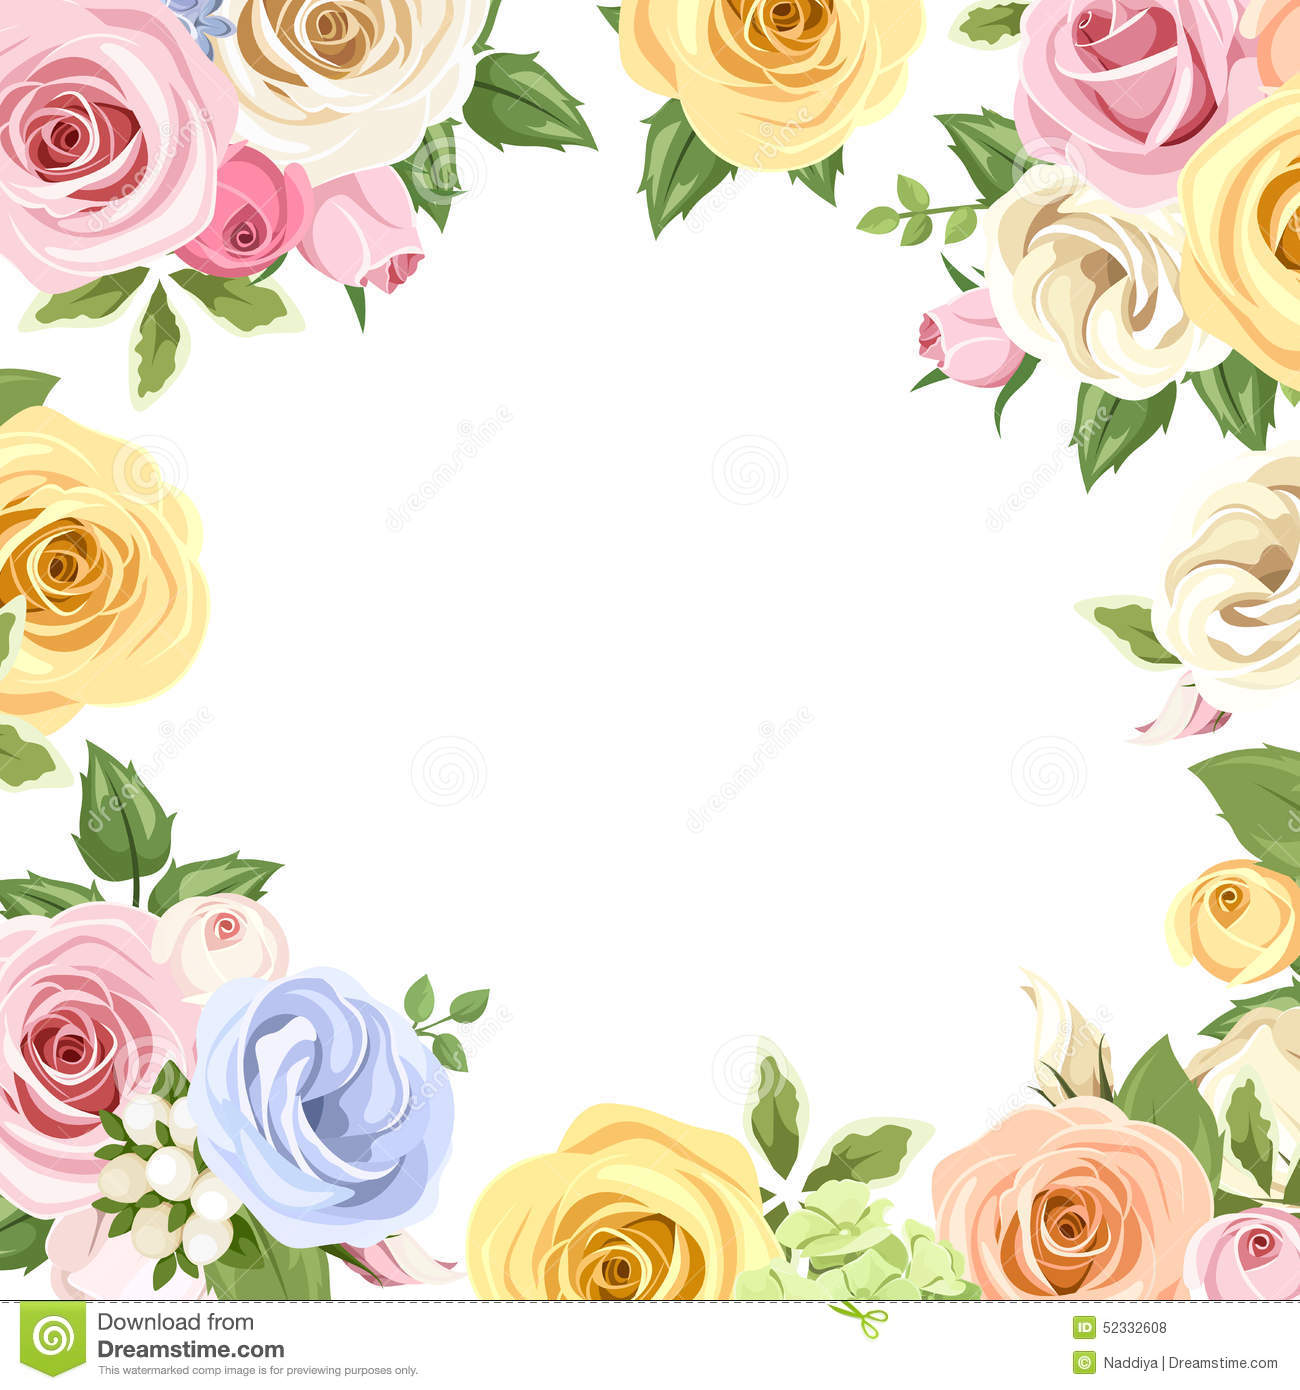 Card With Colorful Roses And Lisianthus Flowers. Vector ...